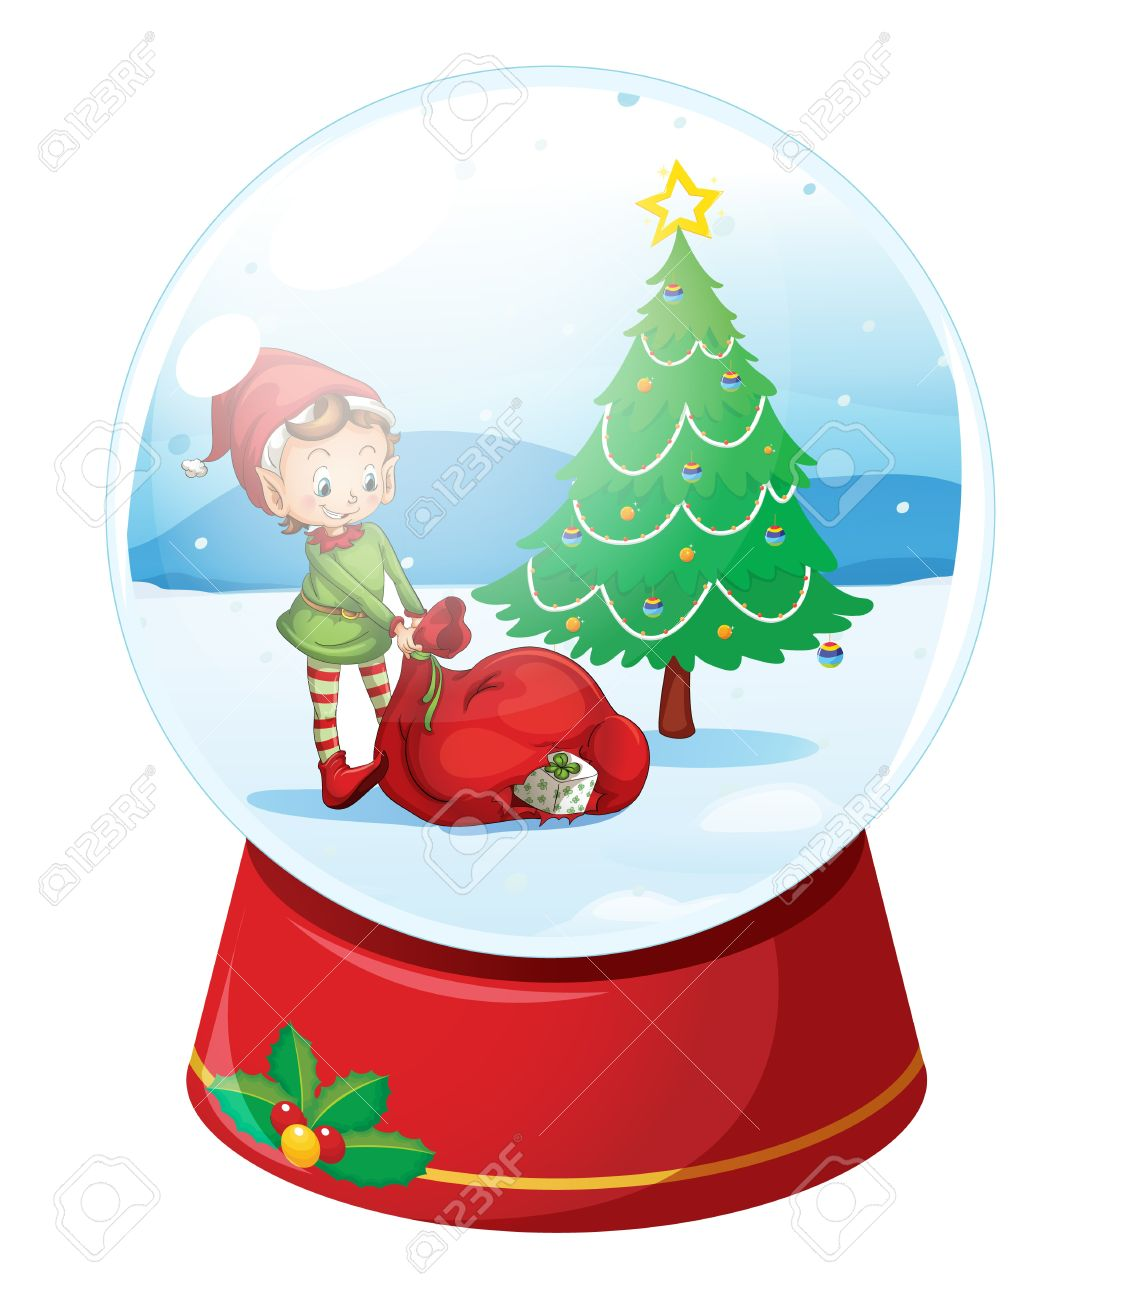 1124x1300 Distinctive Charlie Snow Global Shakeup To Smashing A Snow Globe